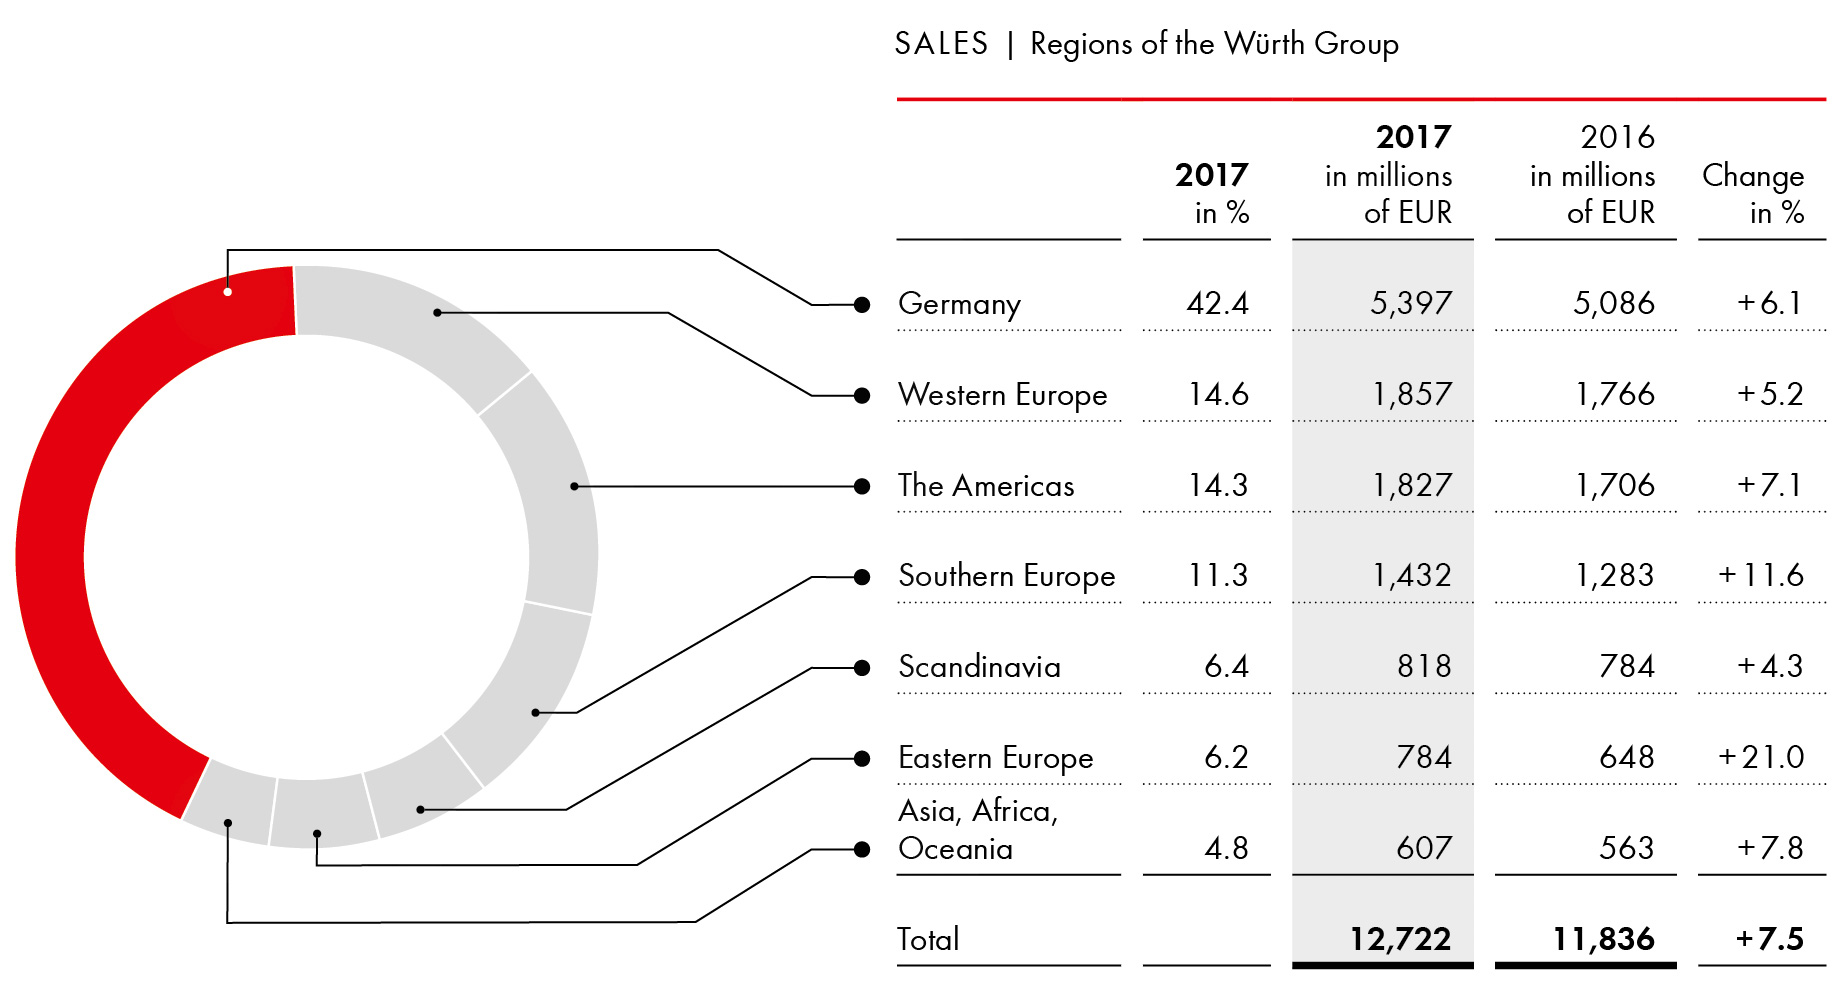 Sales by region 2017